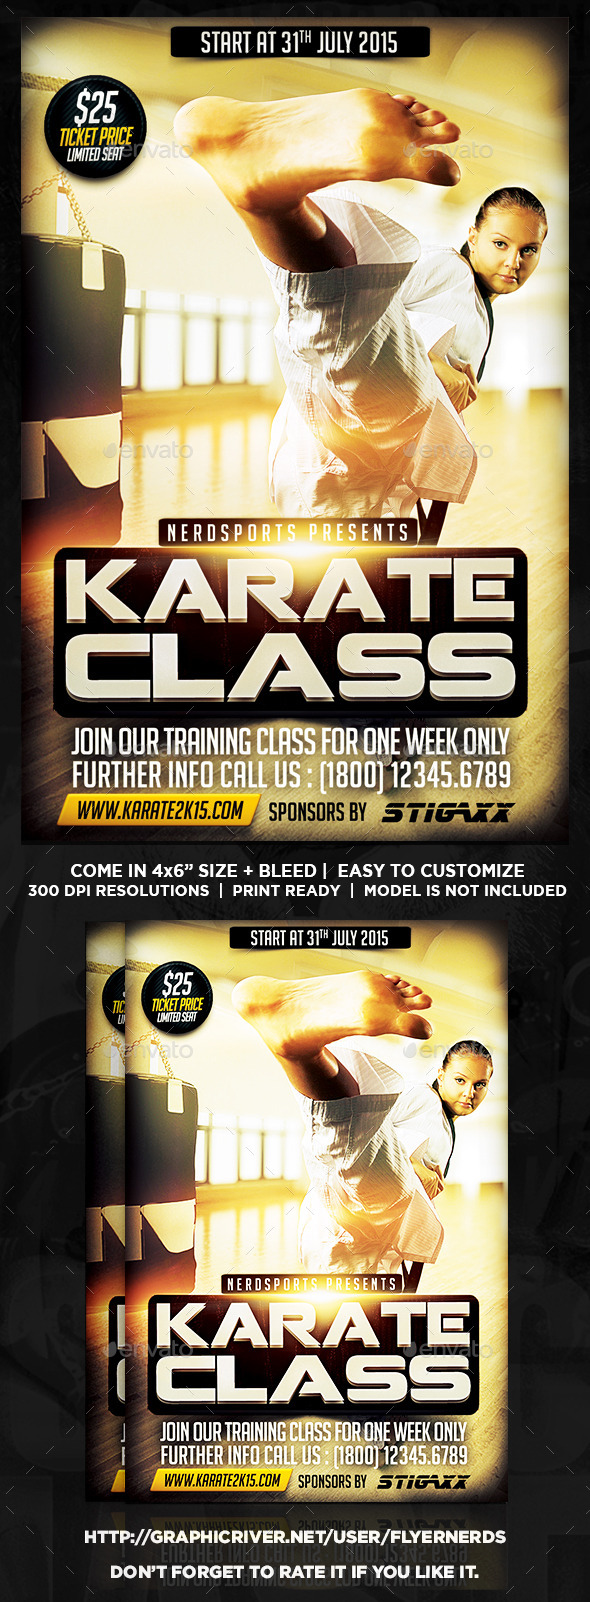 GraphicRiver Karate Class 2K15 Sports Flyer 11428023